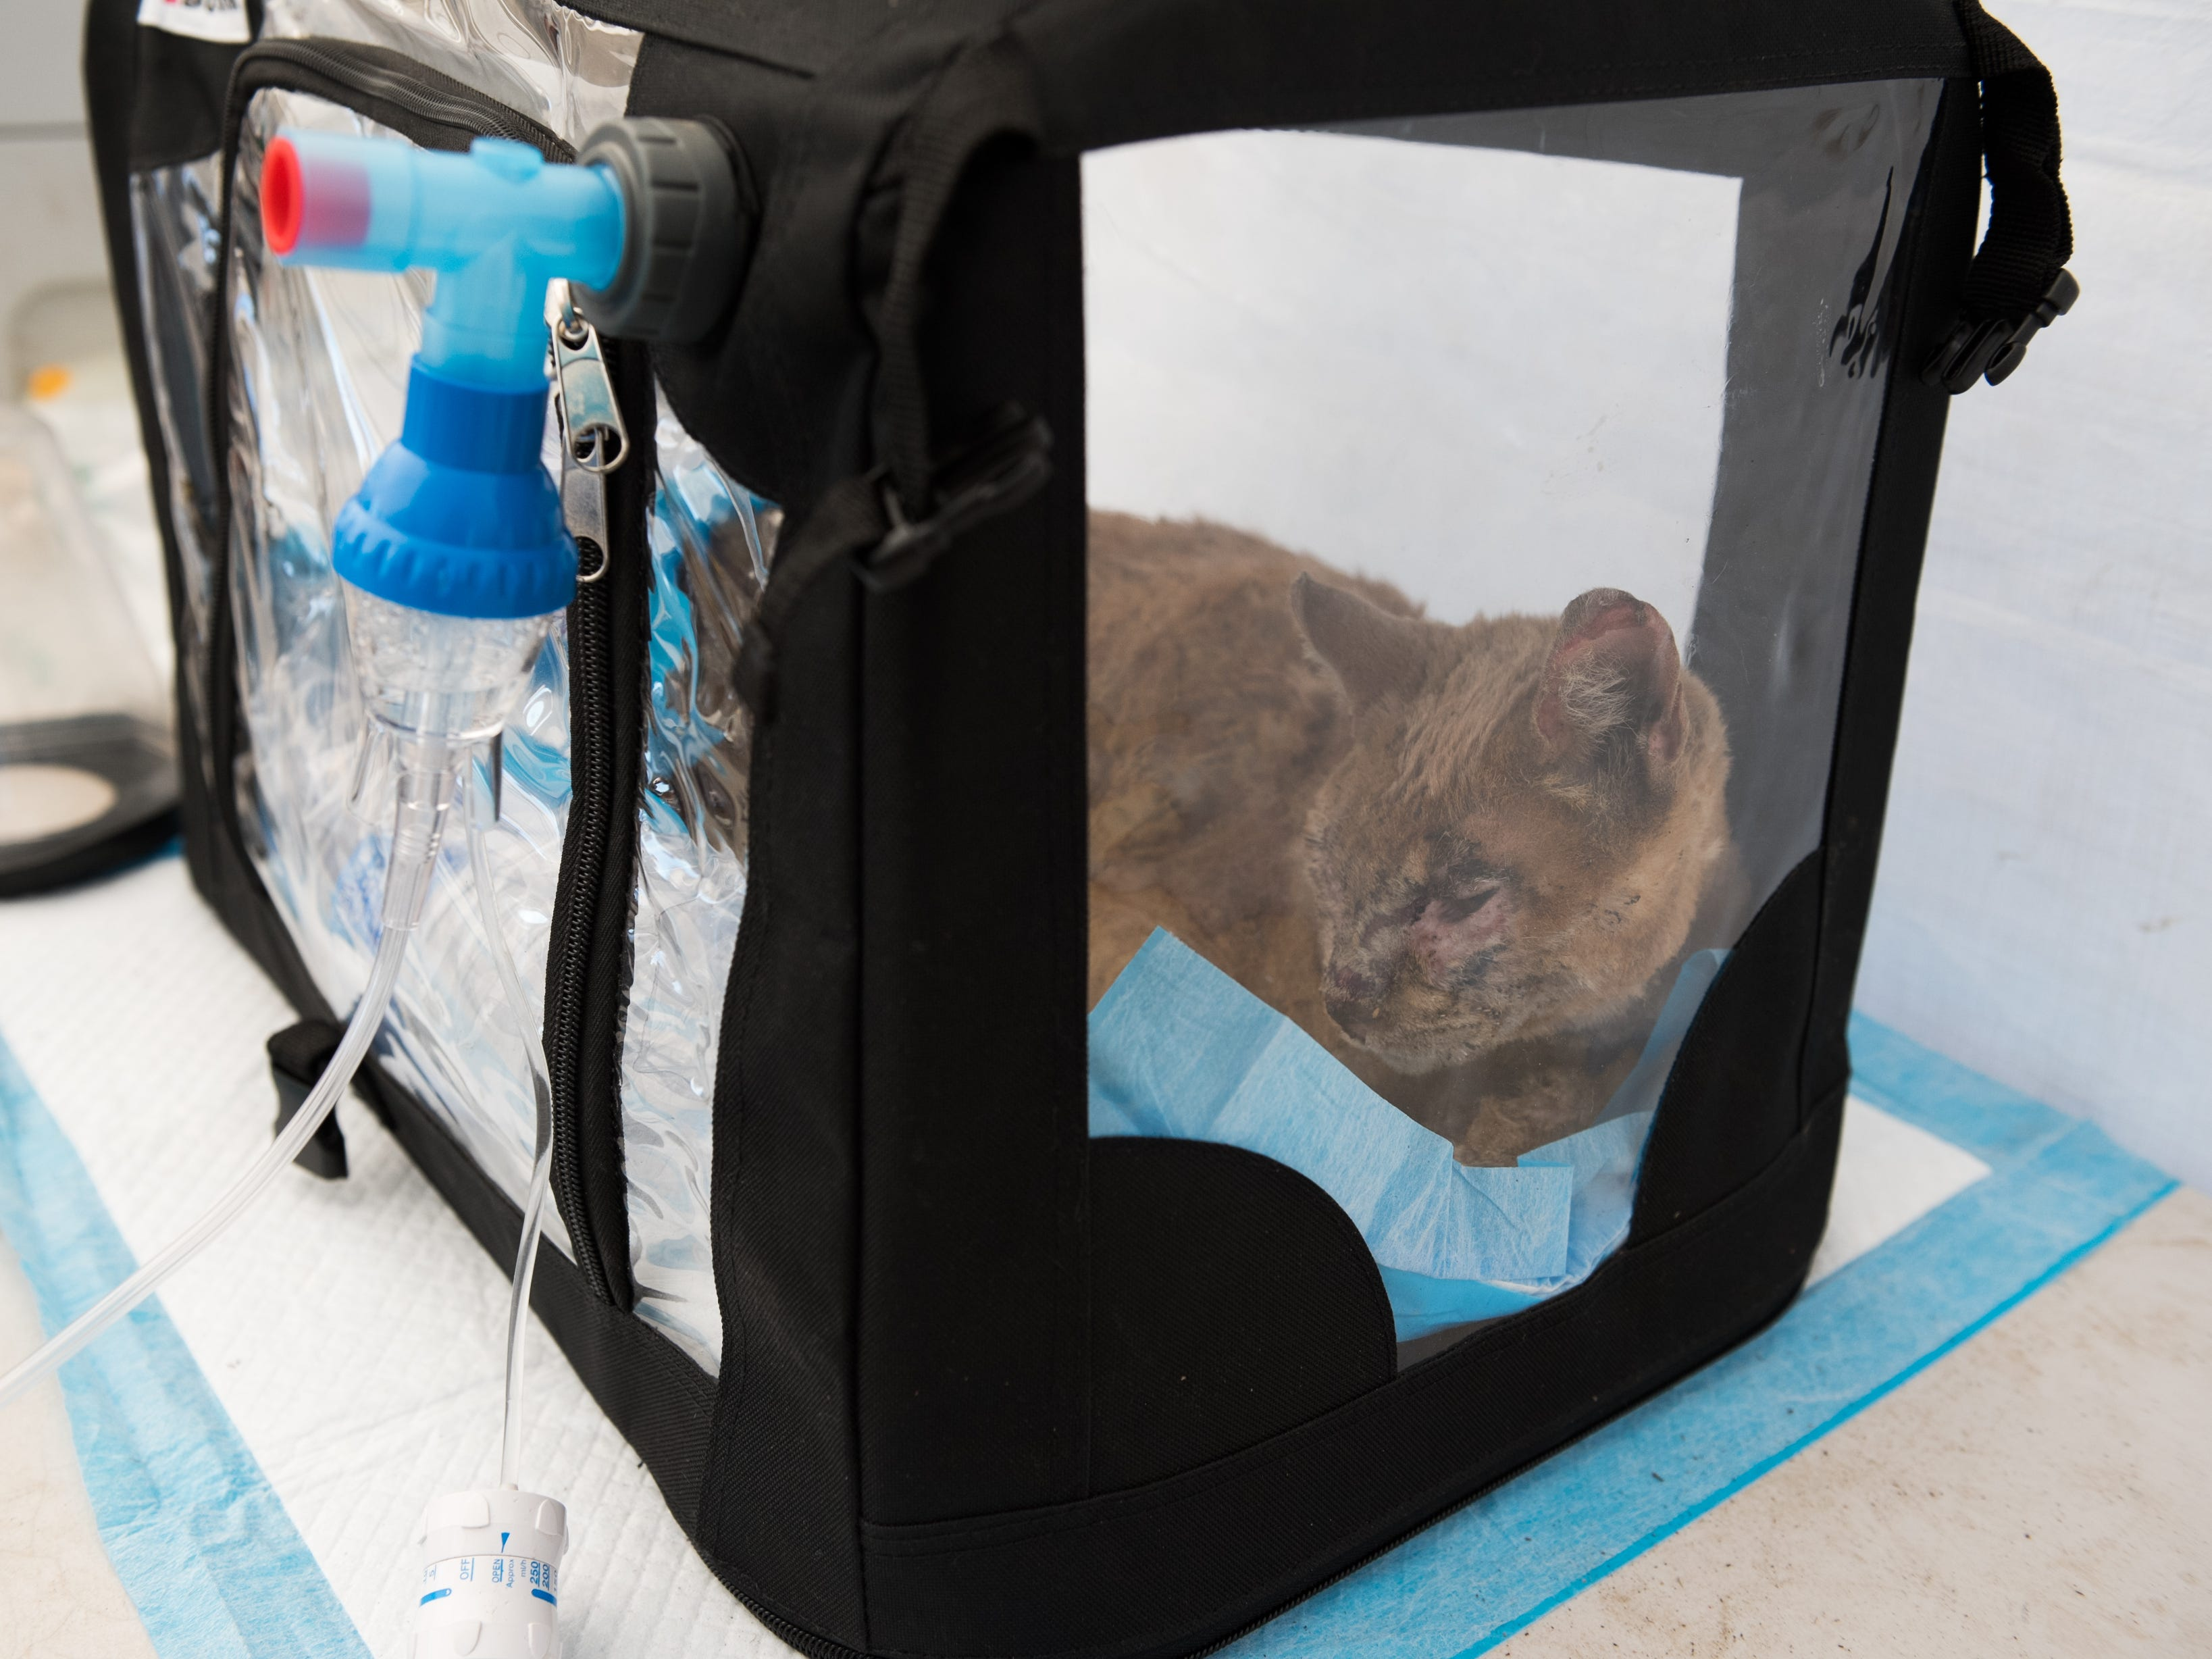 A cat is treated for burns and smoke inhalation from the Woolsey Fire. Volunteer veterinarians with Veterinary Angels and The Little Angels Project, created a tent at Pierce College in Woodland Hills, Calif., to treat animals injured or displaced by the fires.